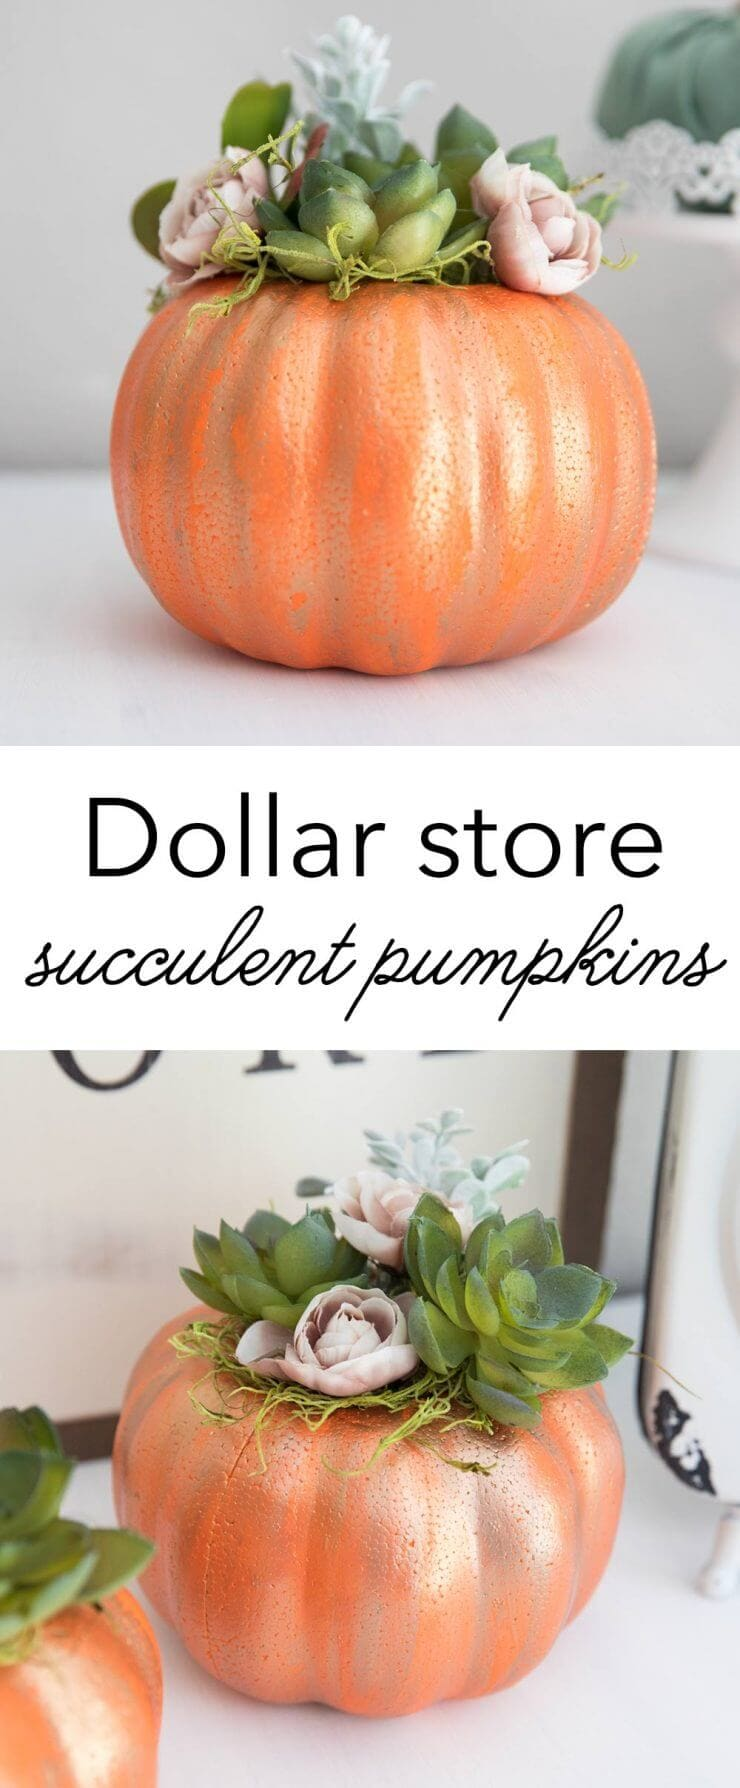 DIY Dollar Store pumpkin with succulents -a cute and simple piece of fall decor!